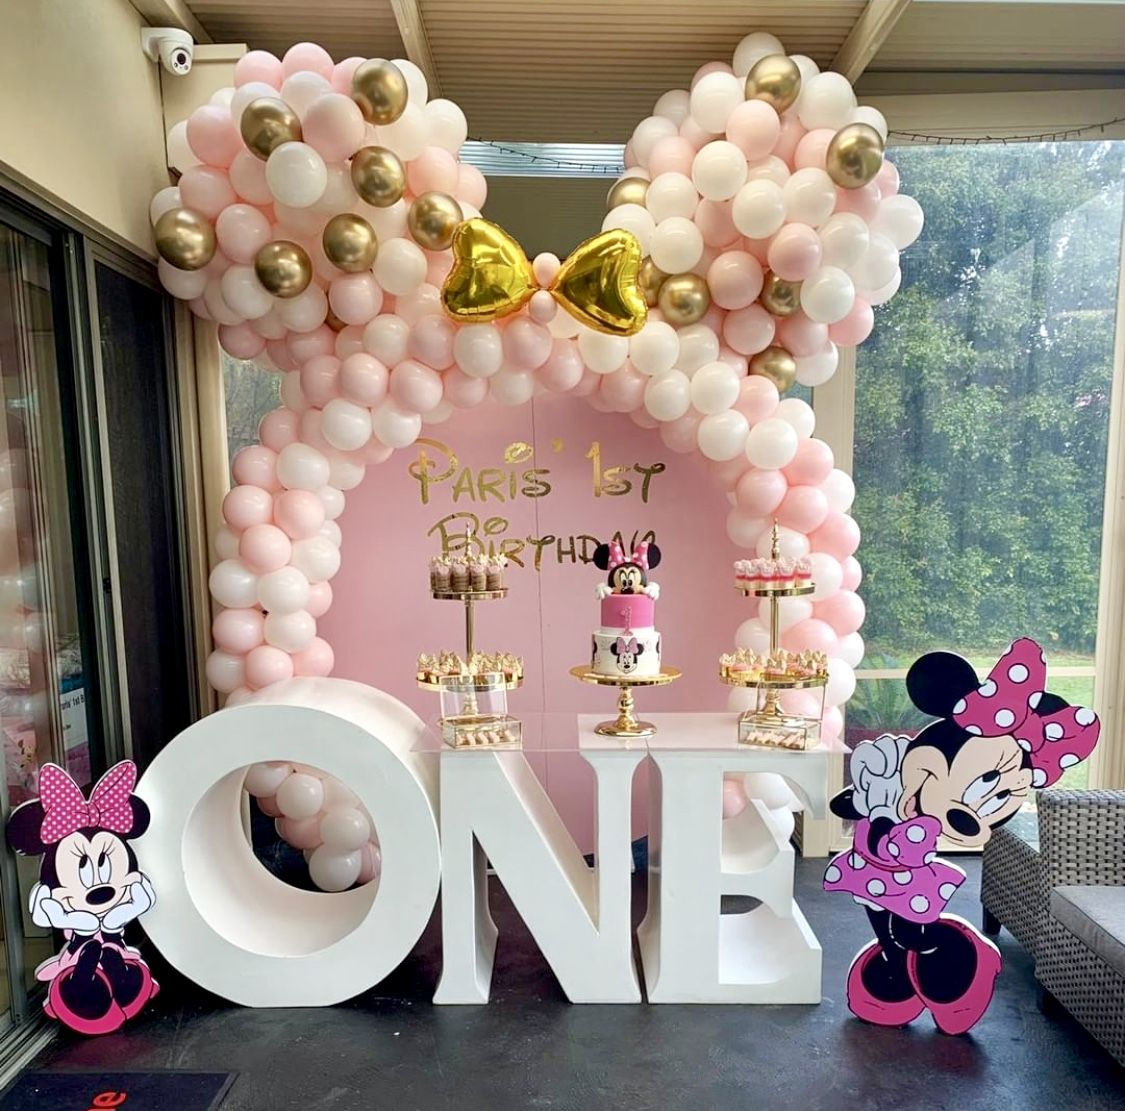 Minnie Mouse Birthday Theme Minnie Mouse Birthday Theme Girl Birthday Decorations Girl Birthday Themes